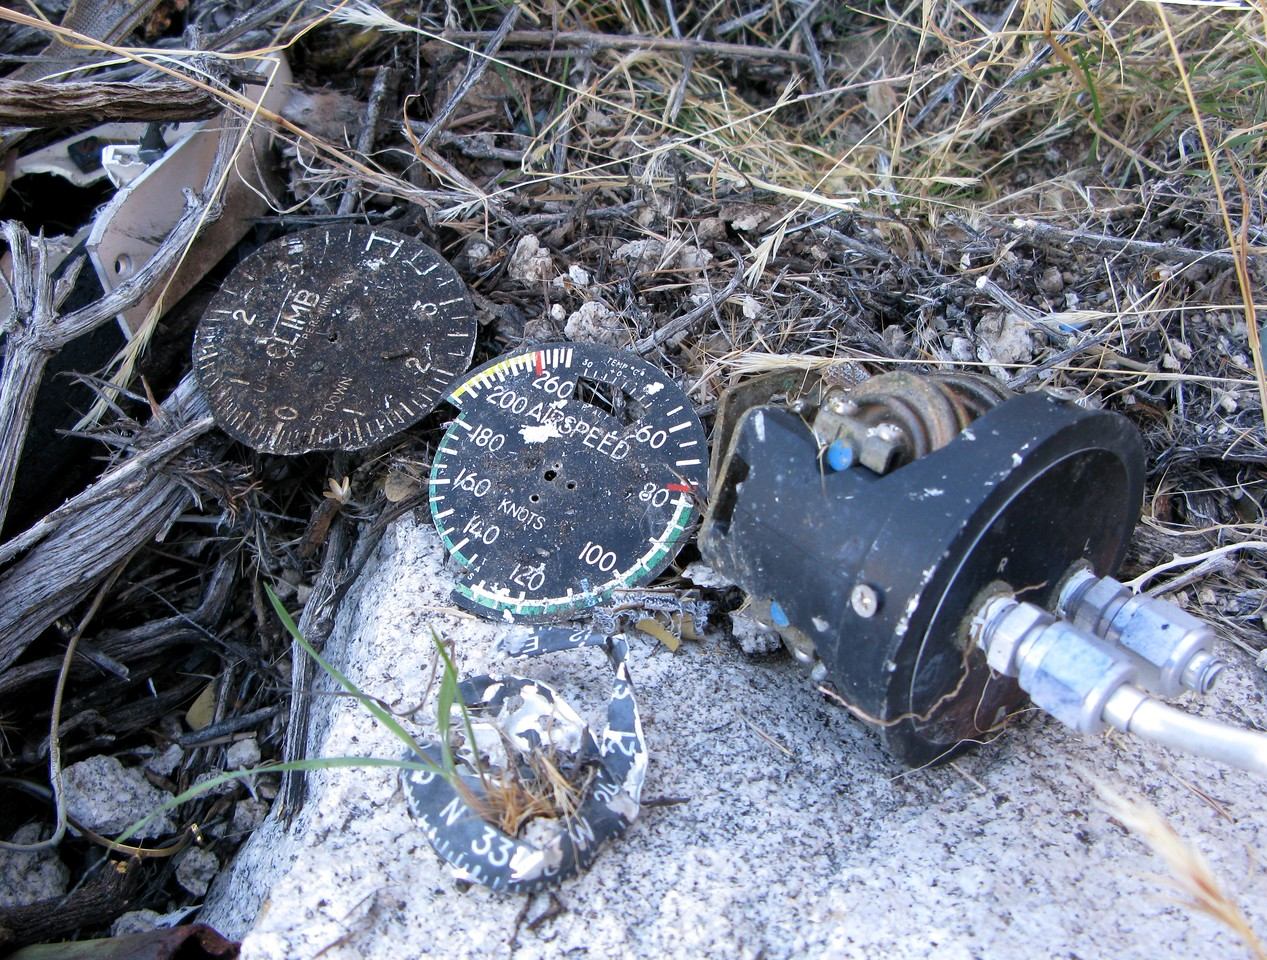 An assembled collection of aircraft pitot-static cockpit flight instrumentation found at the crash site.